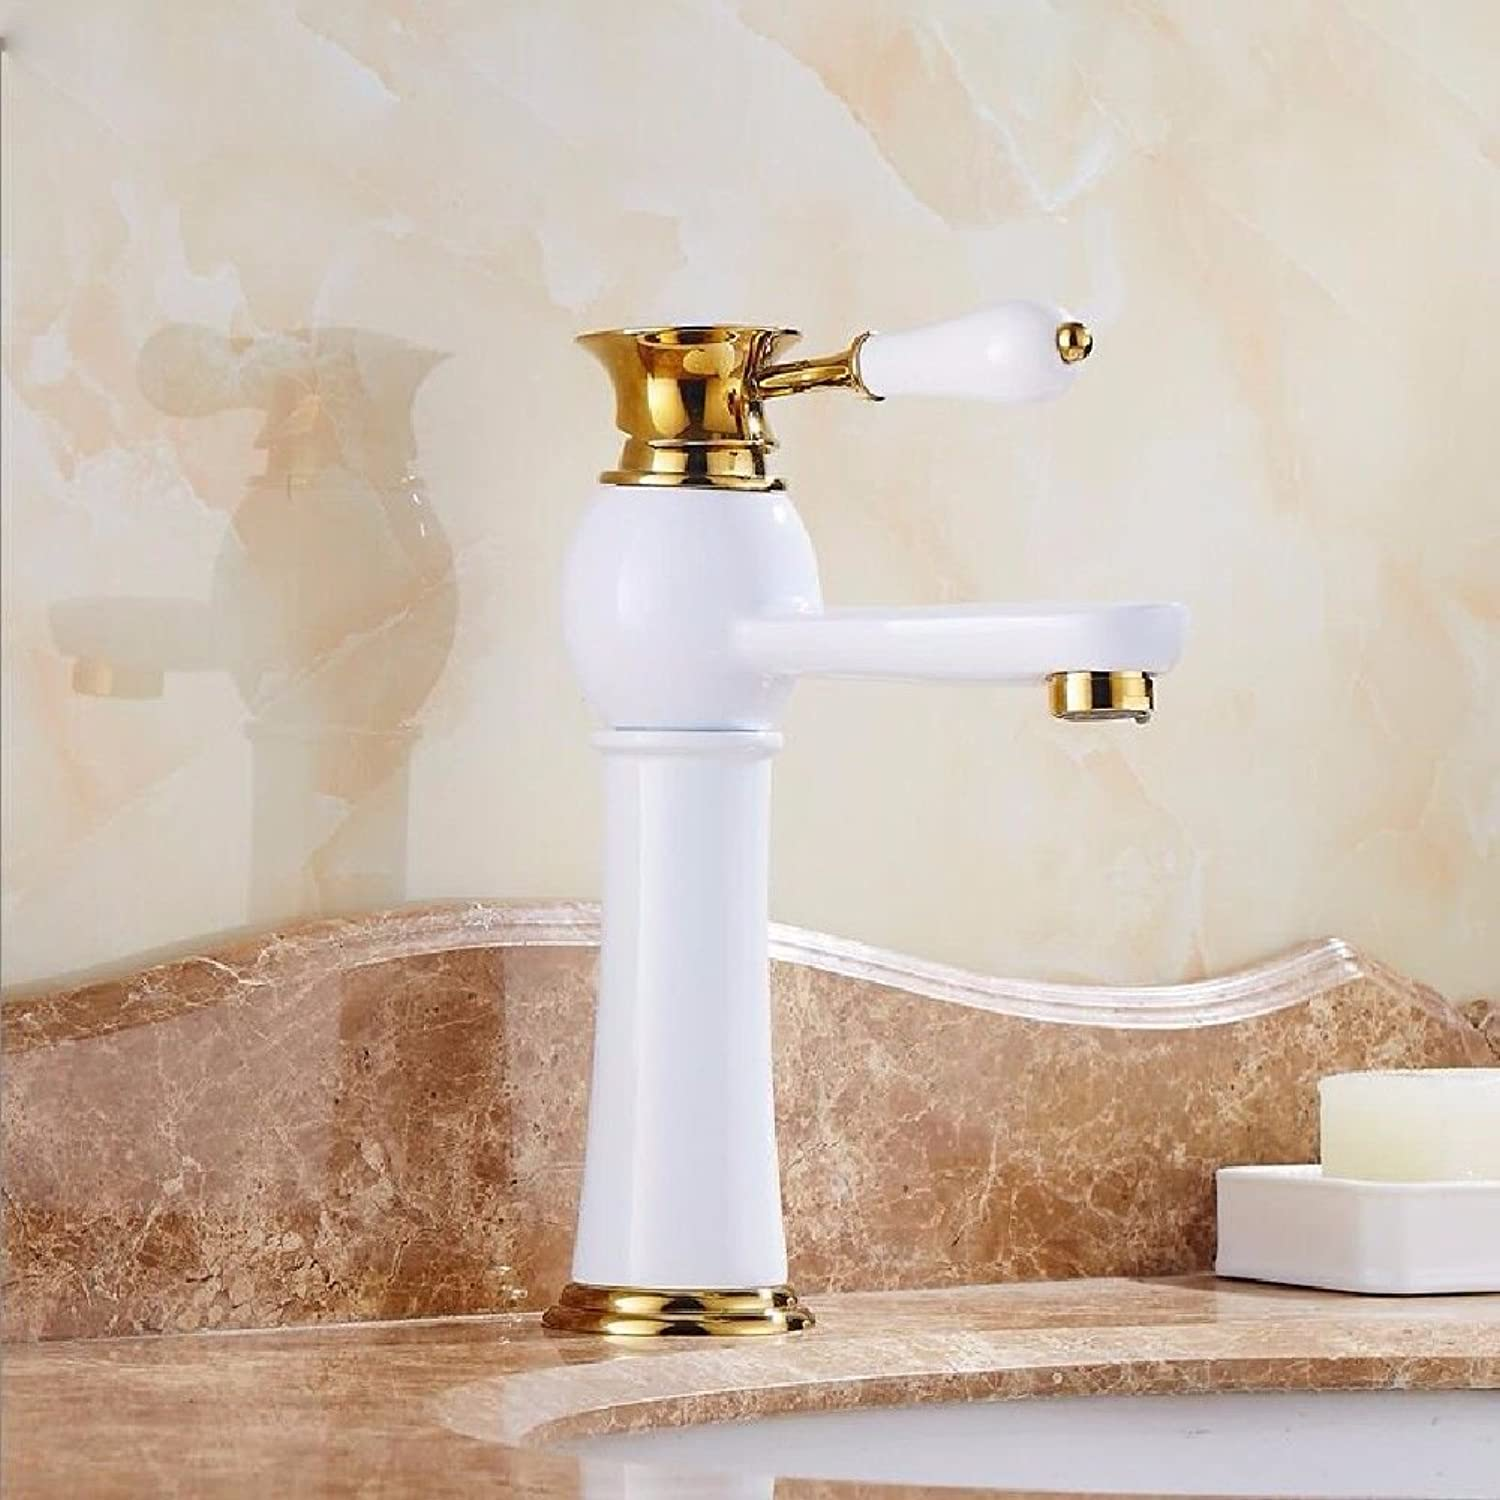 NewBorn Faucet Kitchen Or Bathroom Sink Mixer Tap gold And White Hot And Cold Toast White Paint Full Copper Wash Low